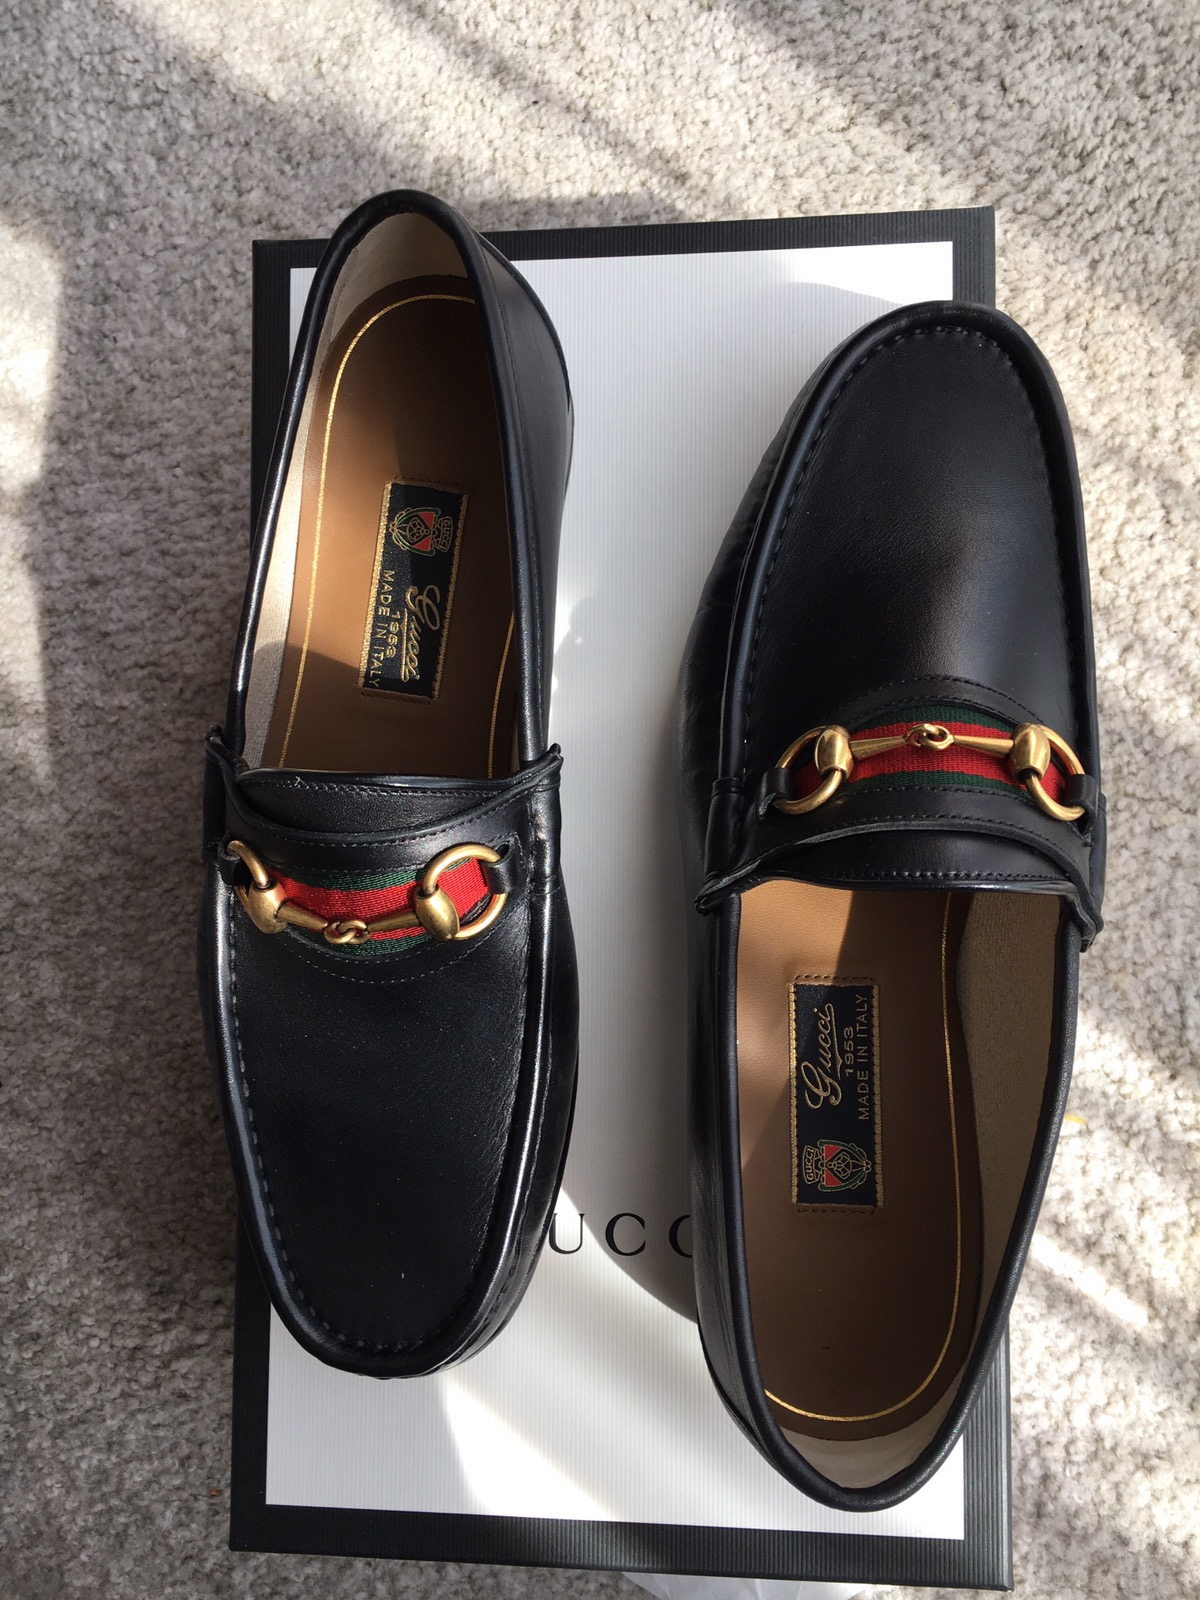 b3749e74221 Gucci 1953 horsebit Loafers Size 9.5 - Casual Leather Shoes for Sale -  Grailed